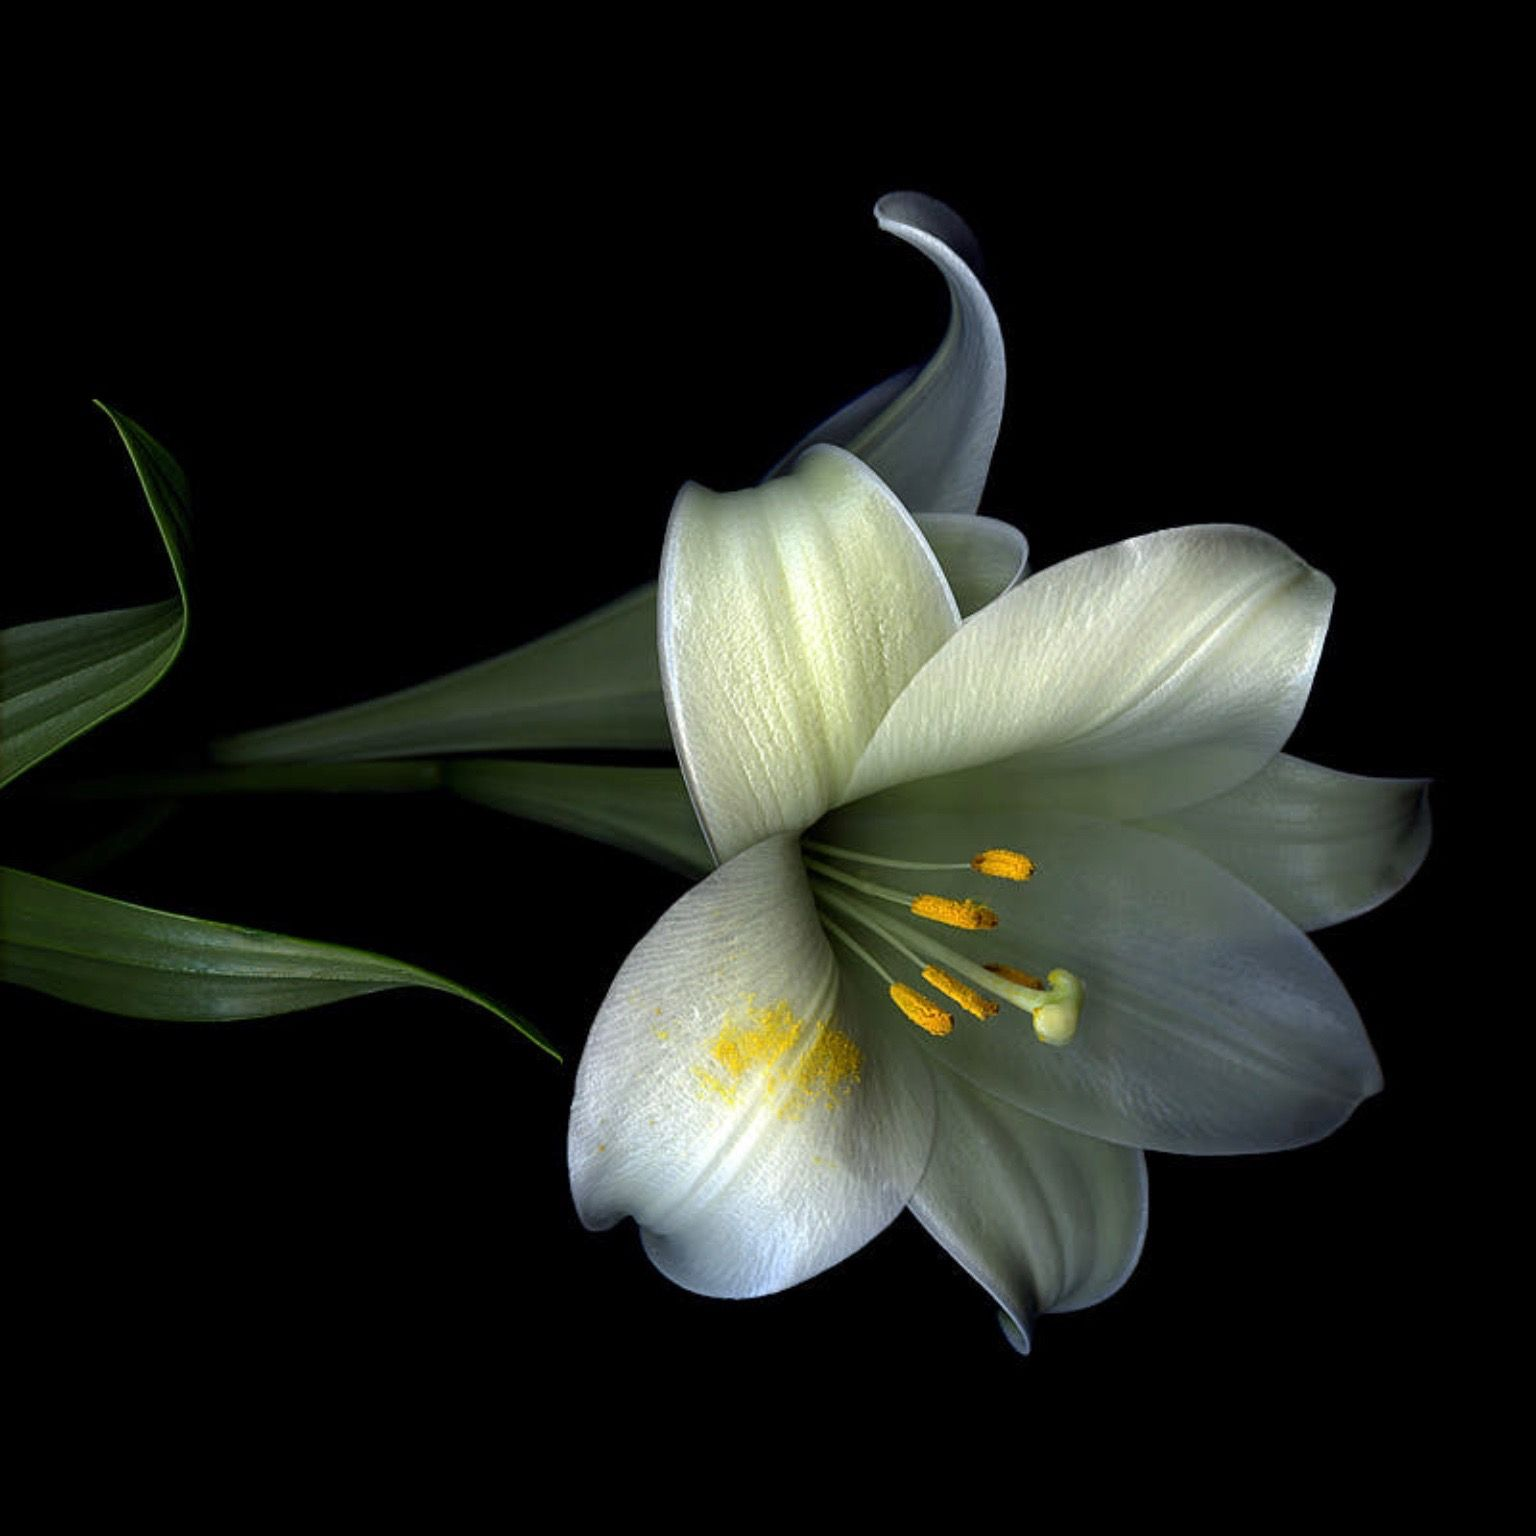 Pin by dee van wyk on allexandro pinterest flowers lily and lilium